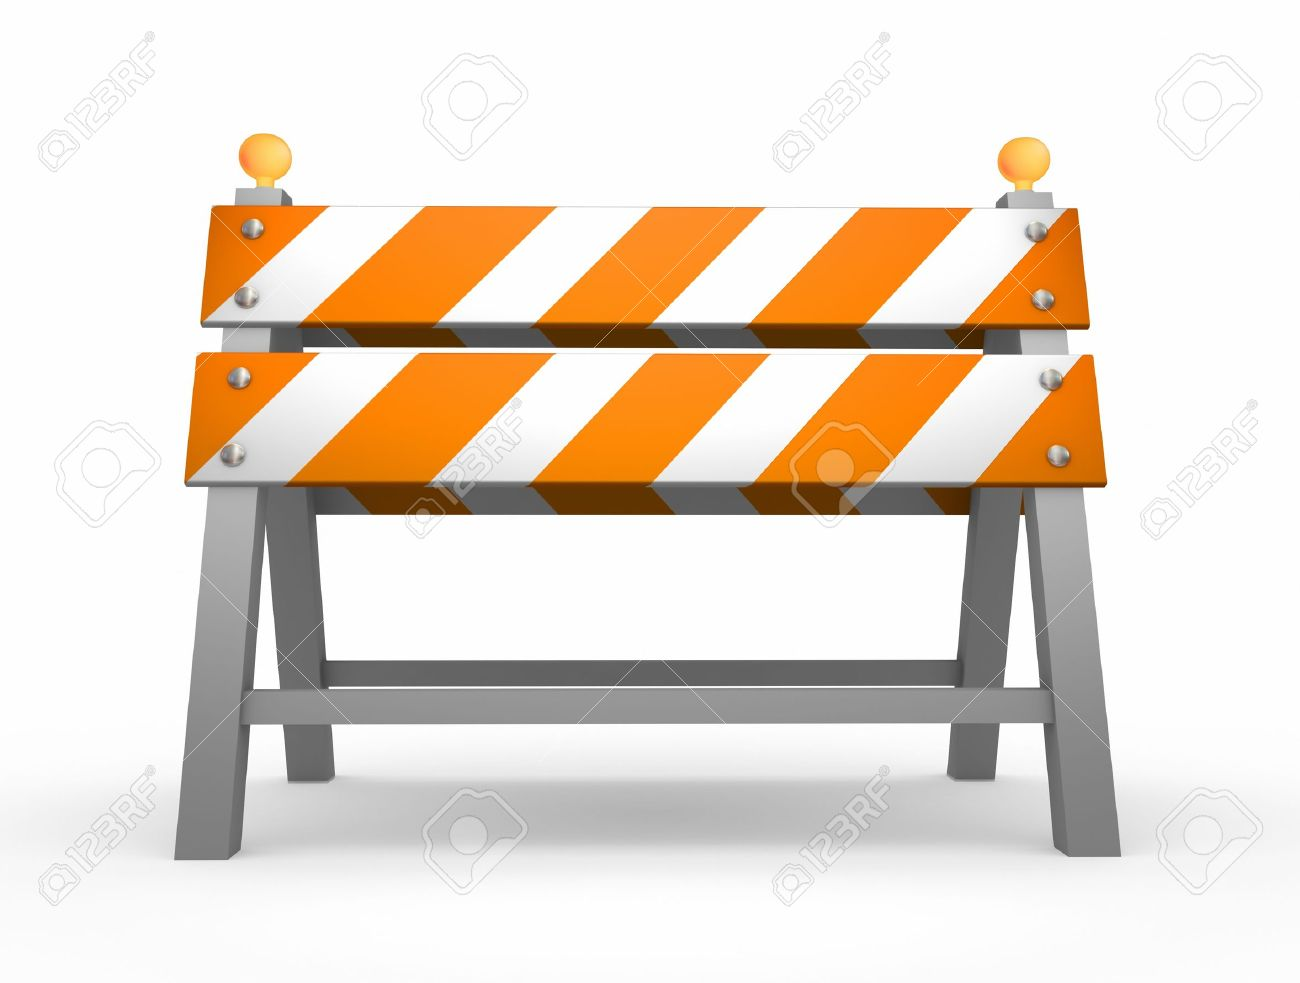 Road barrier - isolated on white background Stock Photo - 9919706